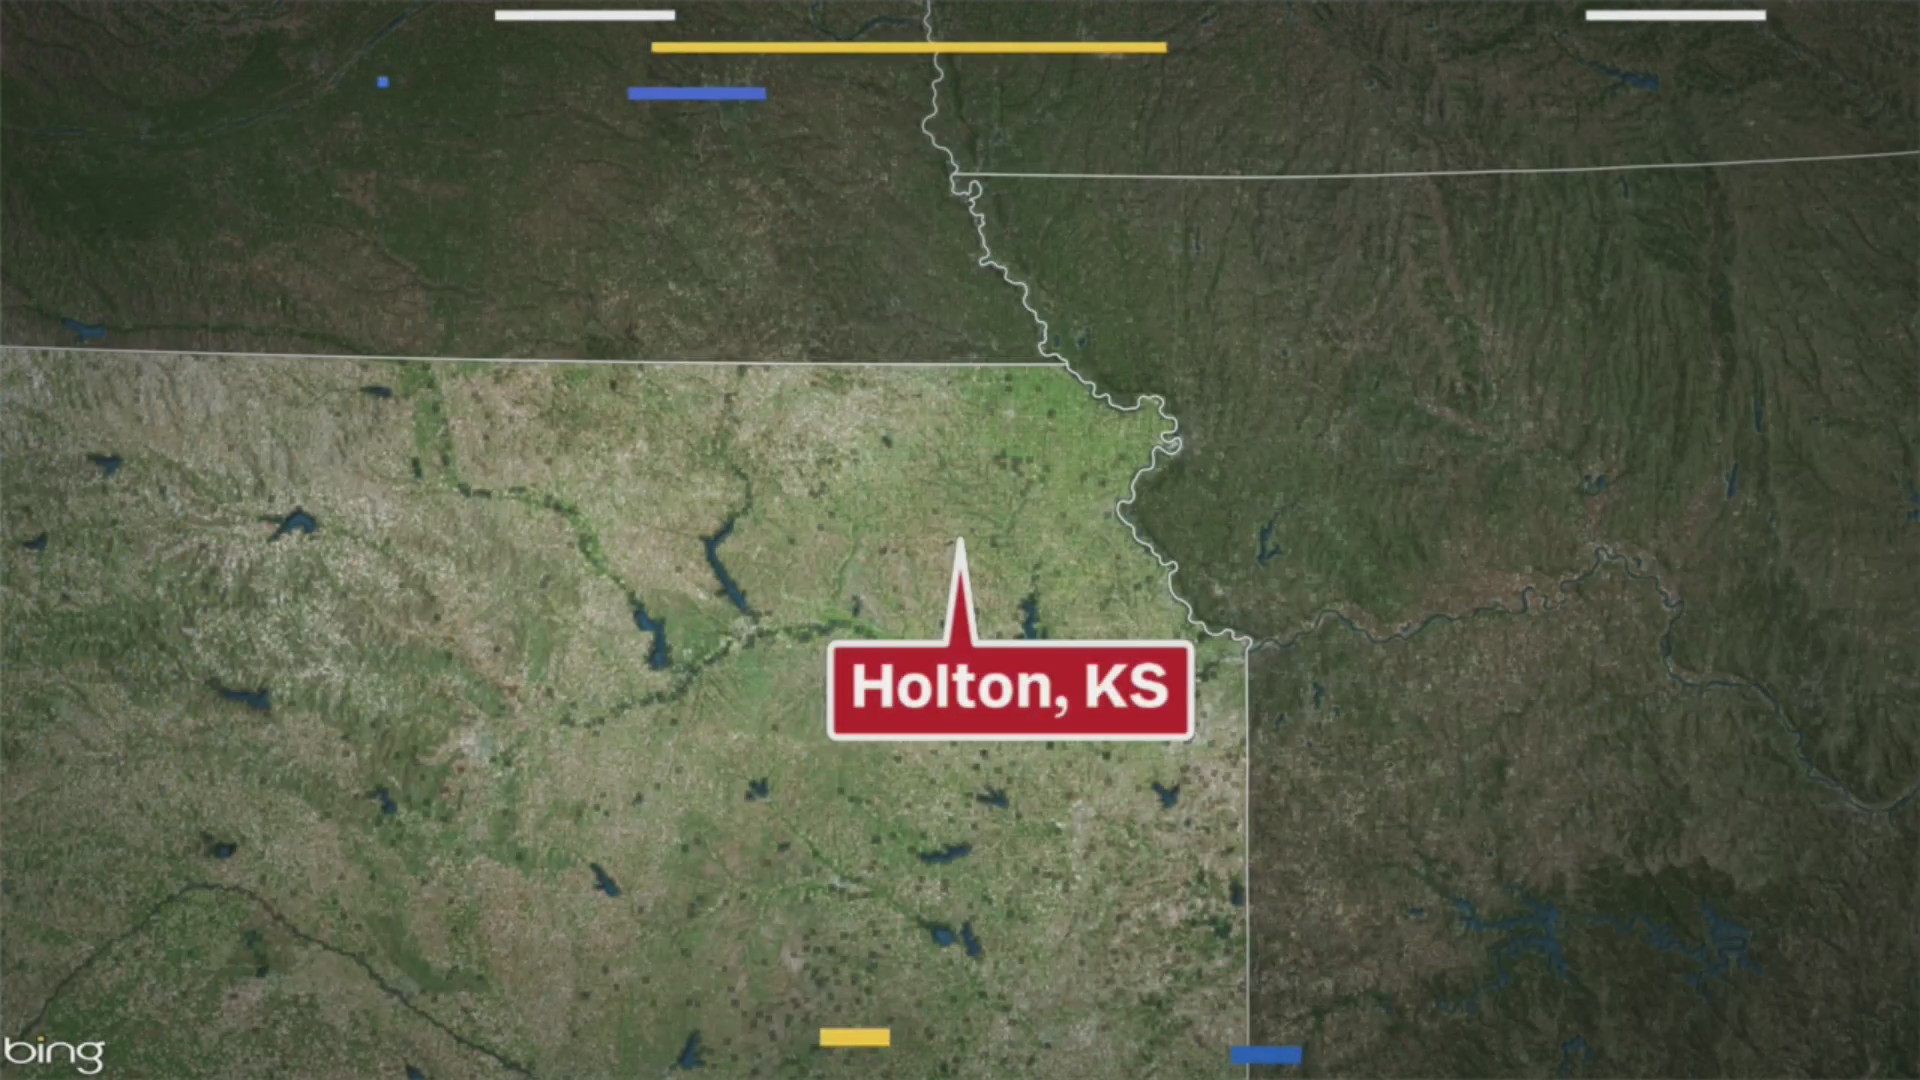 Picture of map with Holton, Kansas